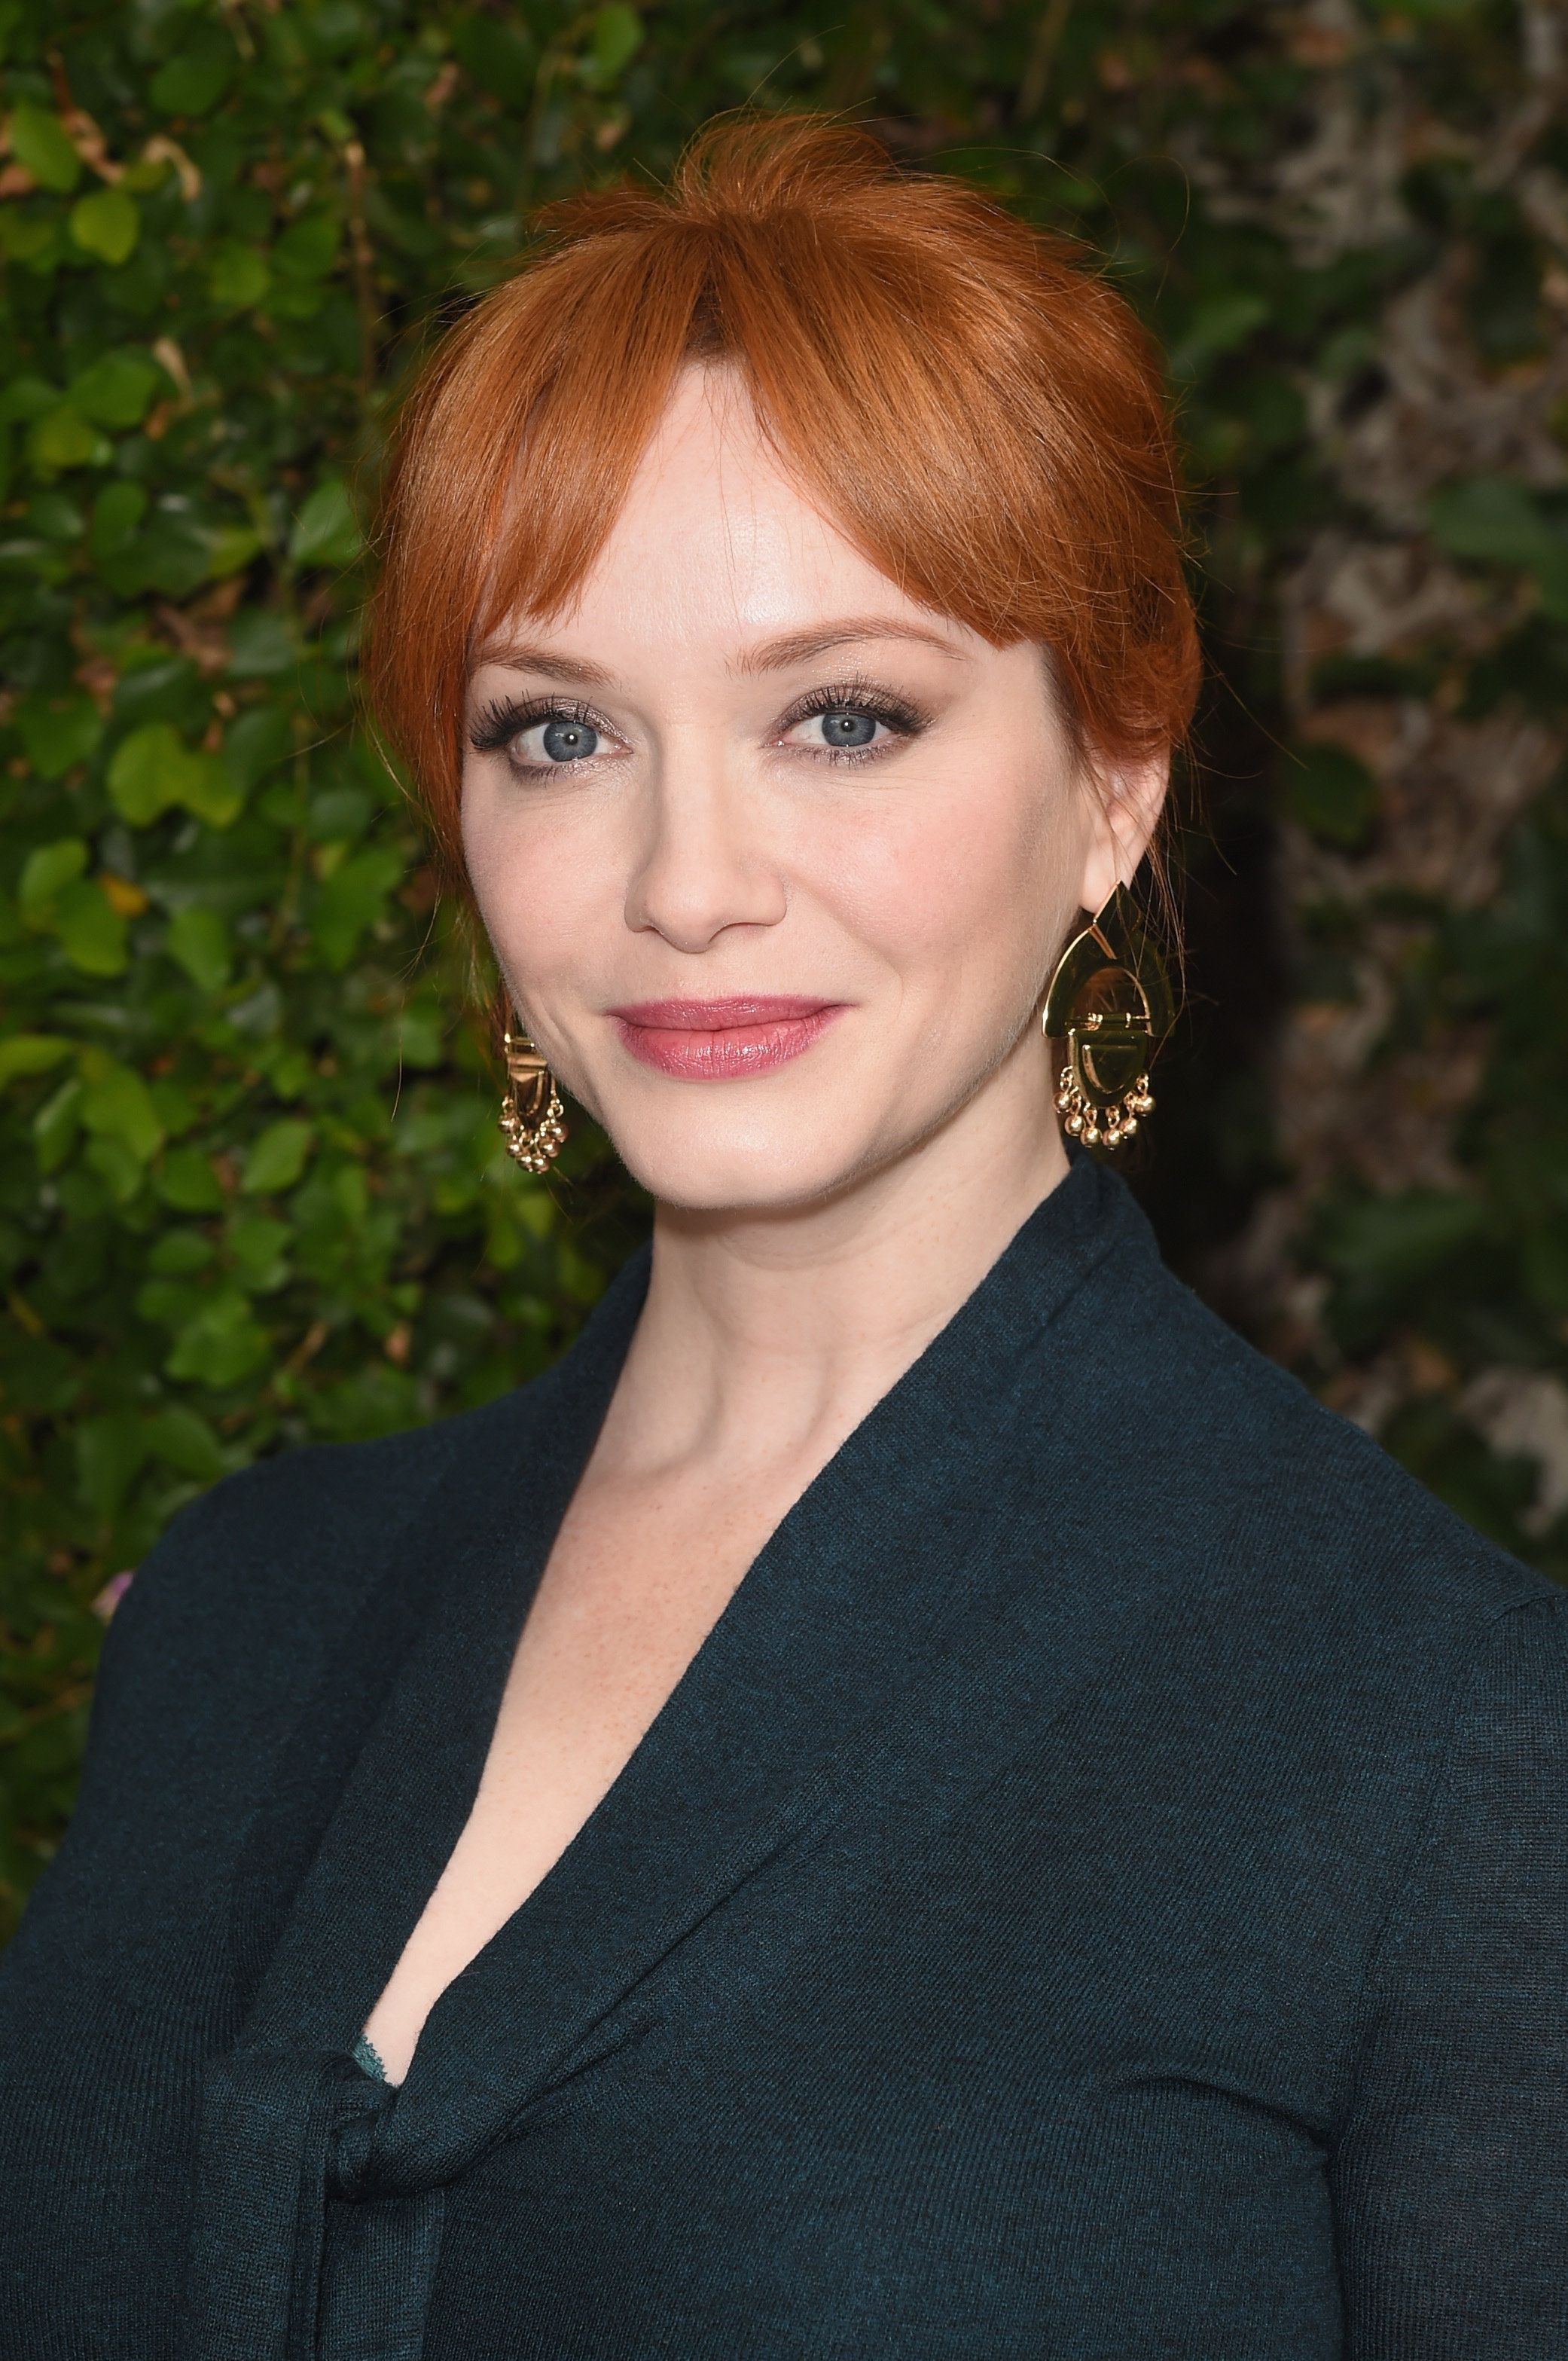 BEVERLY HILLS, CA - OCTOBER 04:  Actress Christina Hendricks attends The Rape Foundation's annual brunch at Greenacres, The Private Estate of Ron Burkle on October 4, 2015 in Beverly Hills, California.  (Photo by Jason Merritt/Getty Images for The Rape Foundation)